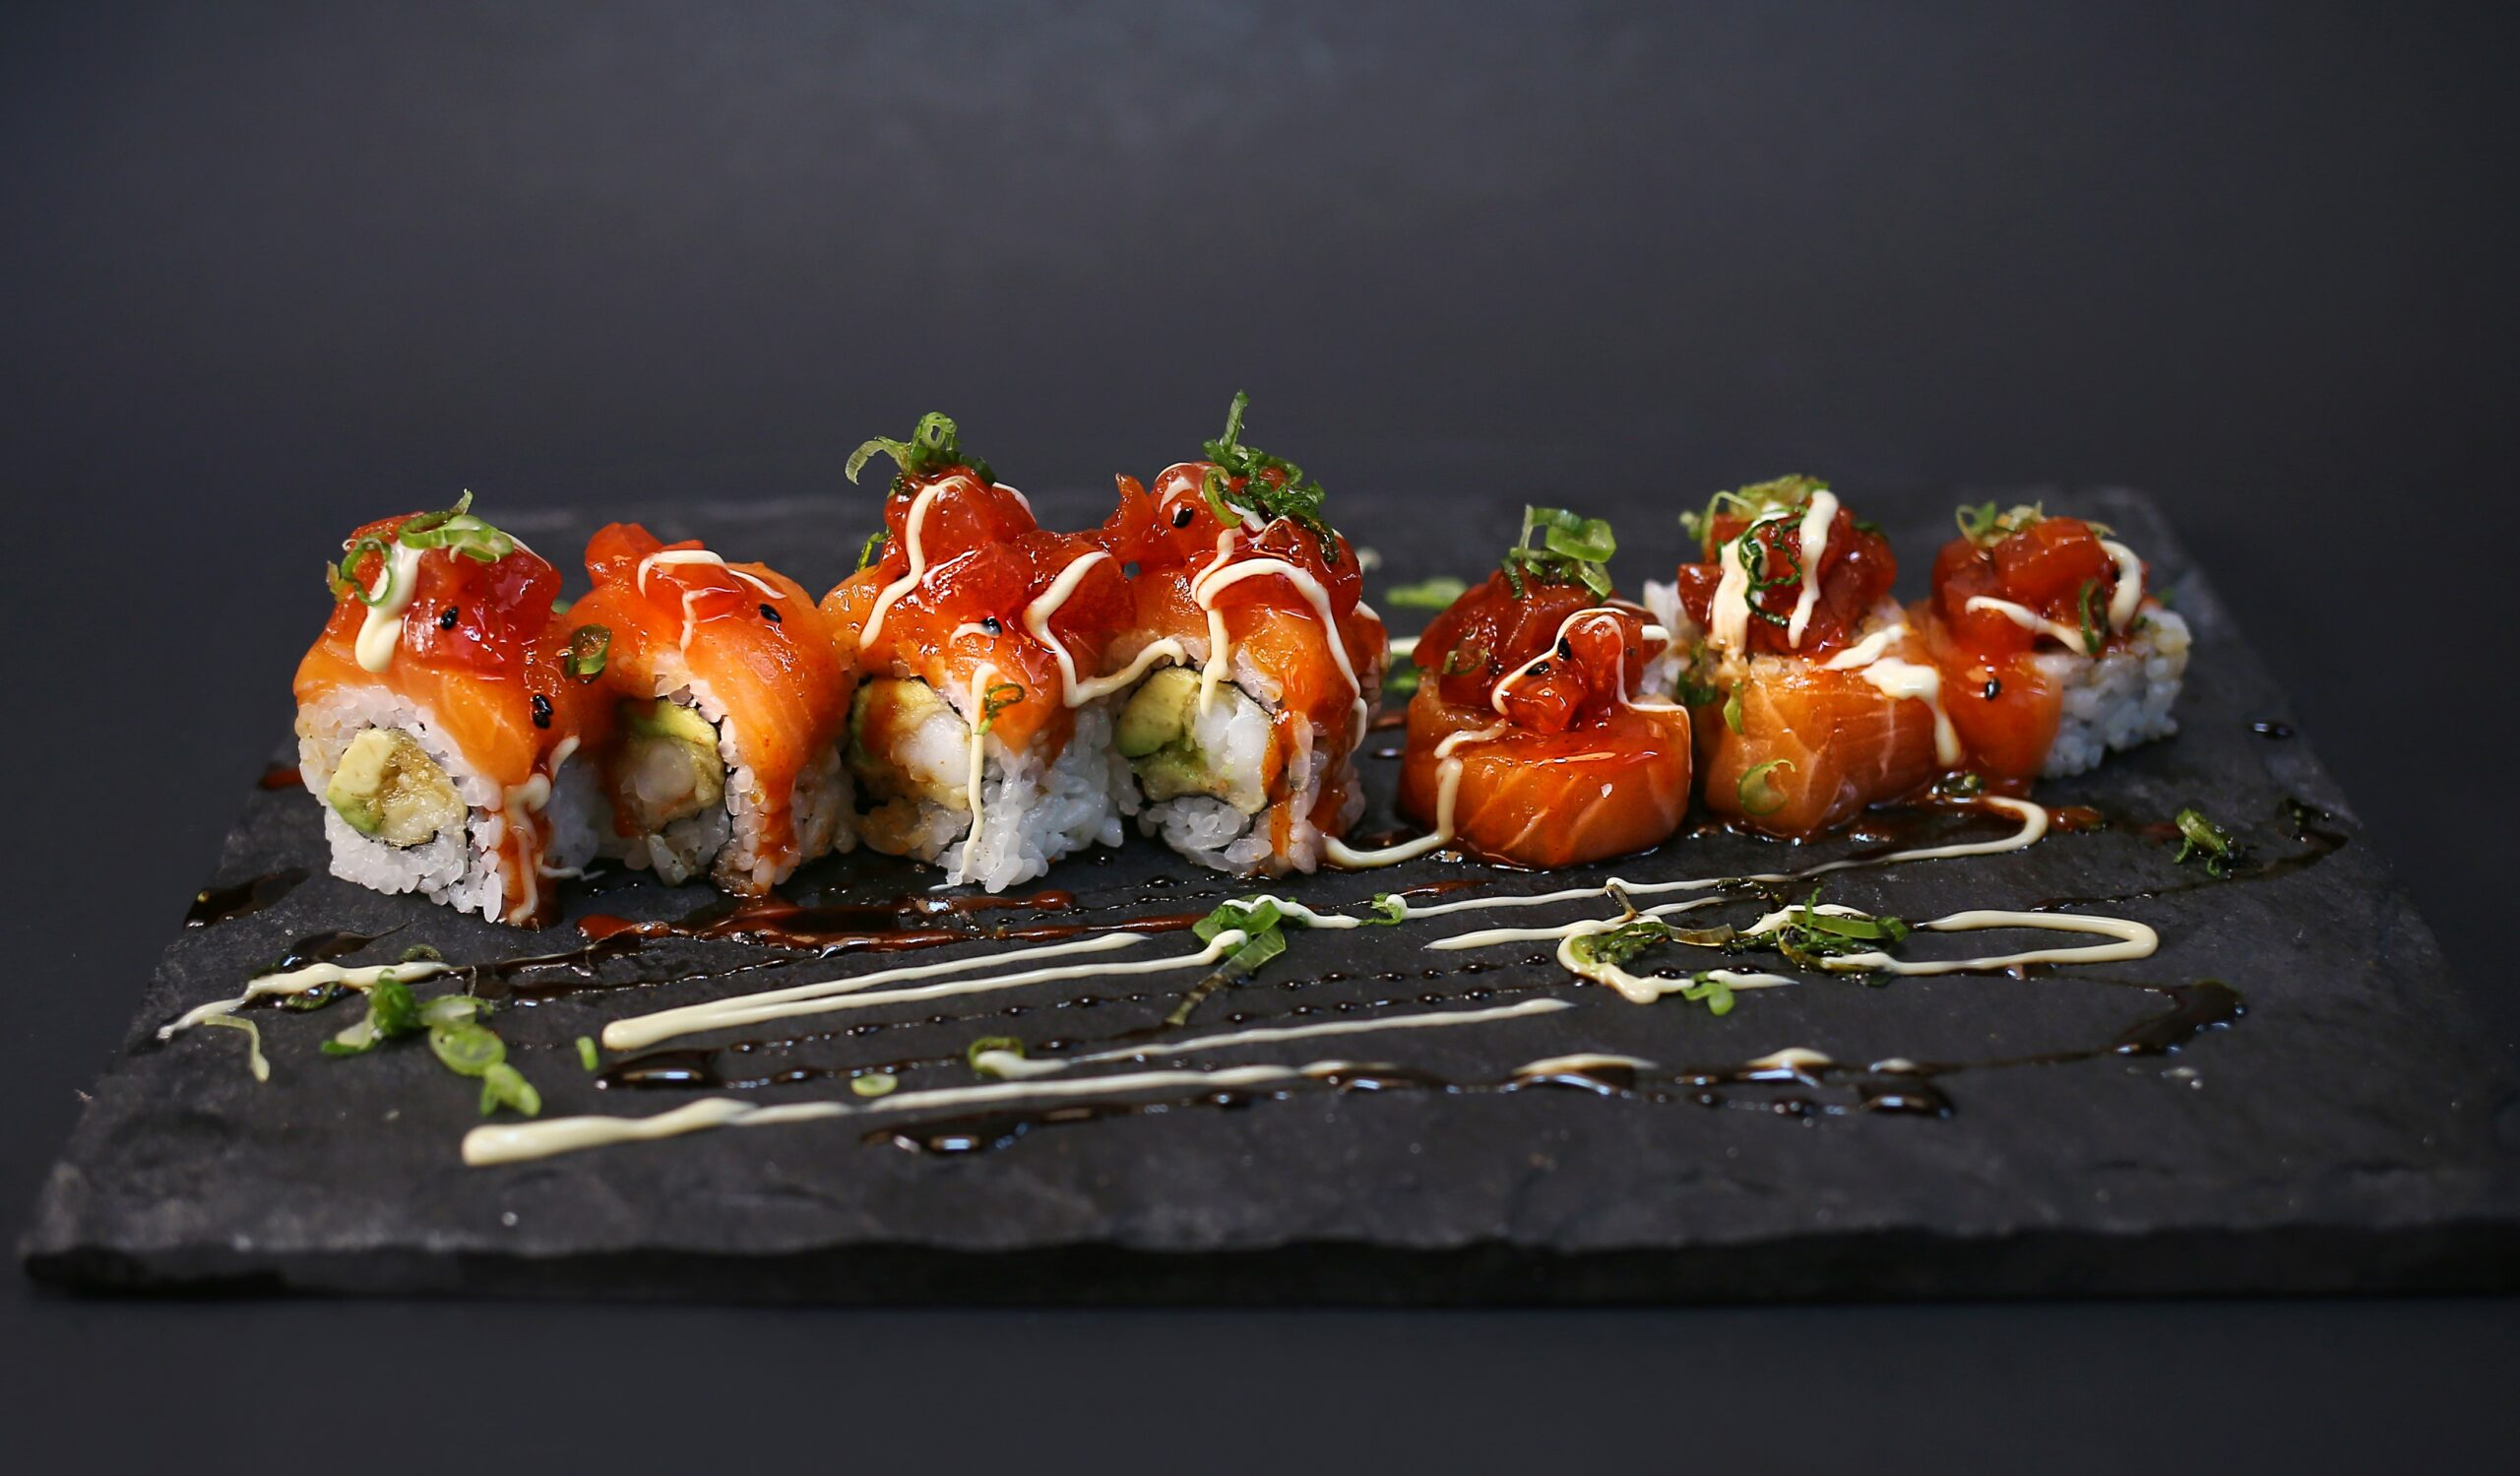 Fresh off their flagship refresh, Houston's pioneering Uptown Sushi team is ready to make waves again with the debut of Sushi Rebel in Spring's dynamic Cityplace District